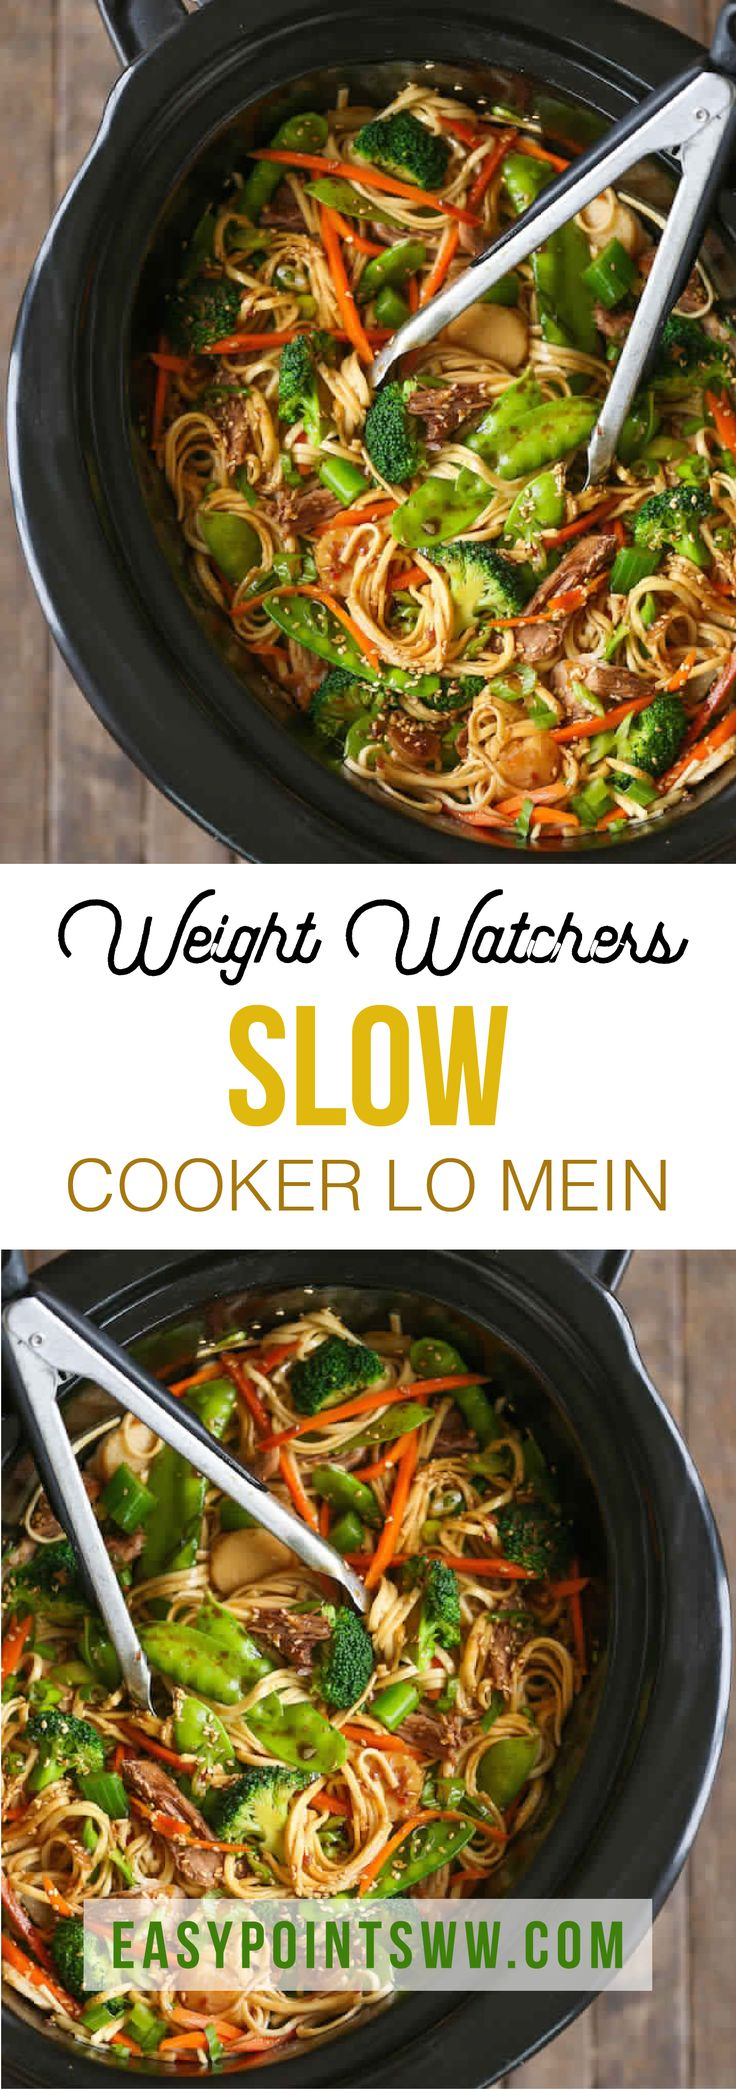 WEIGHT WATCHERS SLOW COOKER LO MEIN ♥